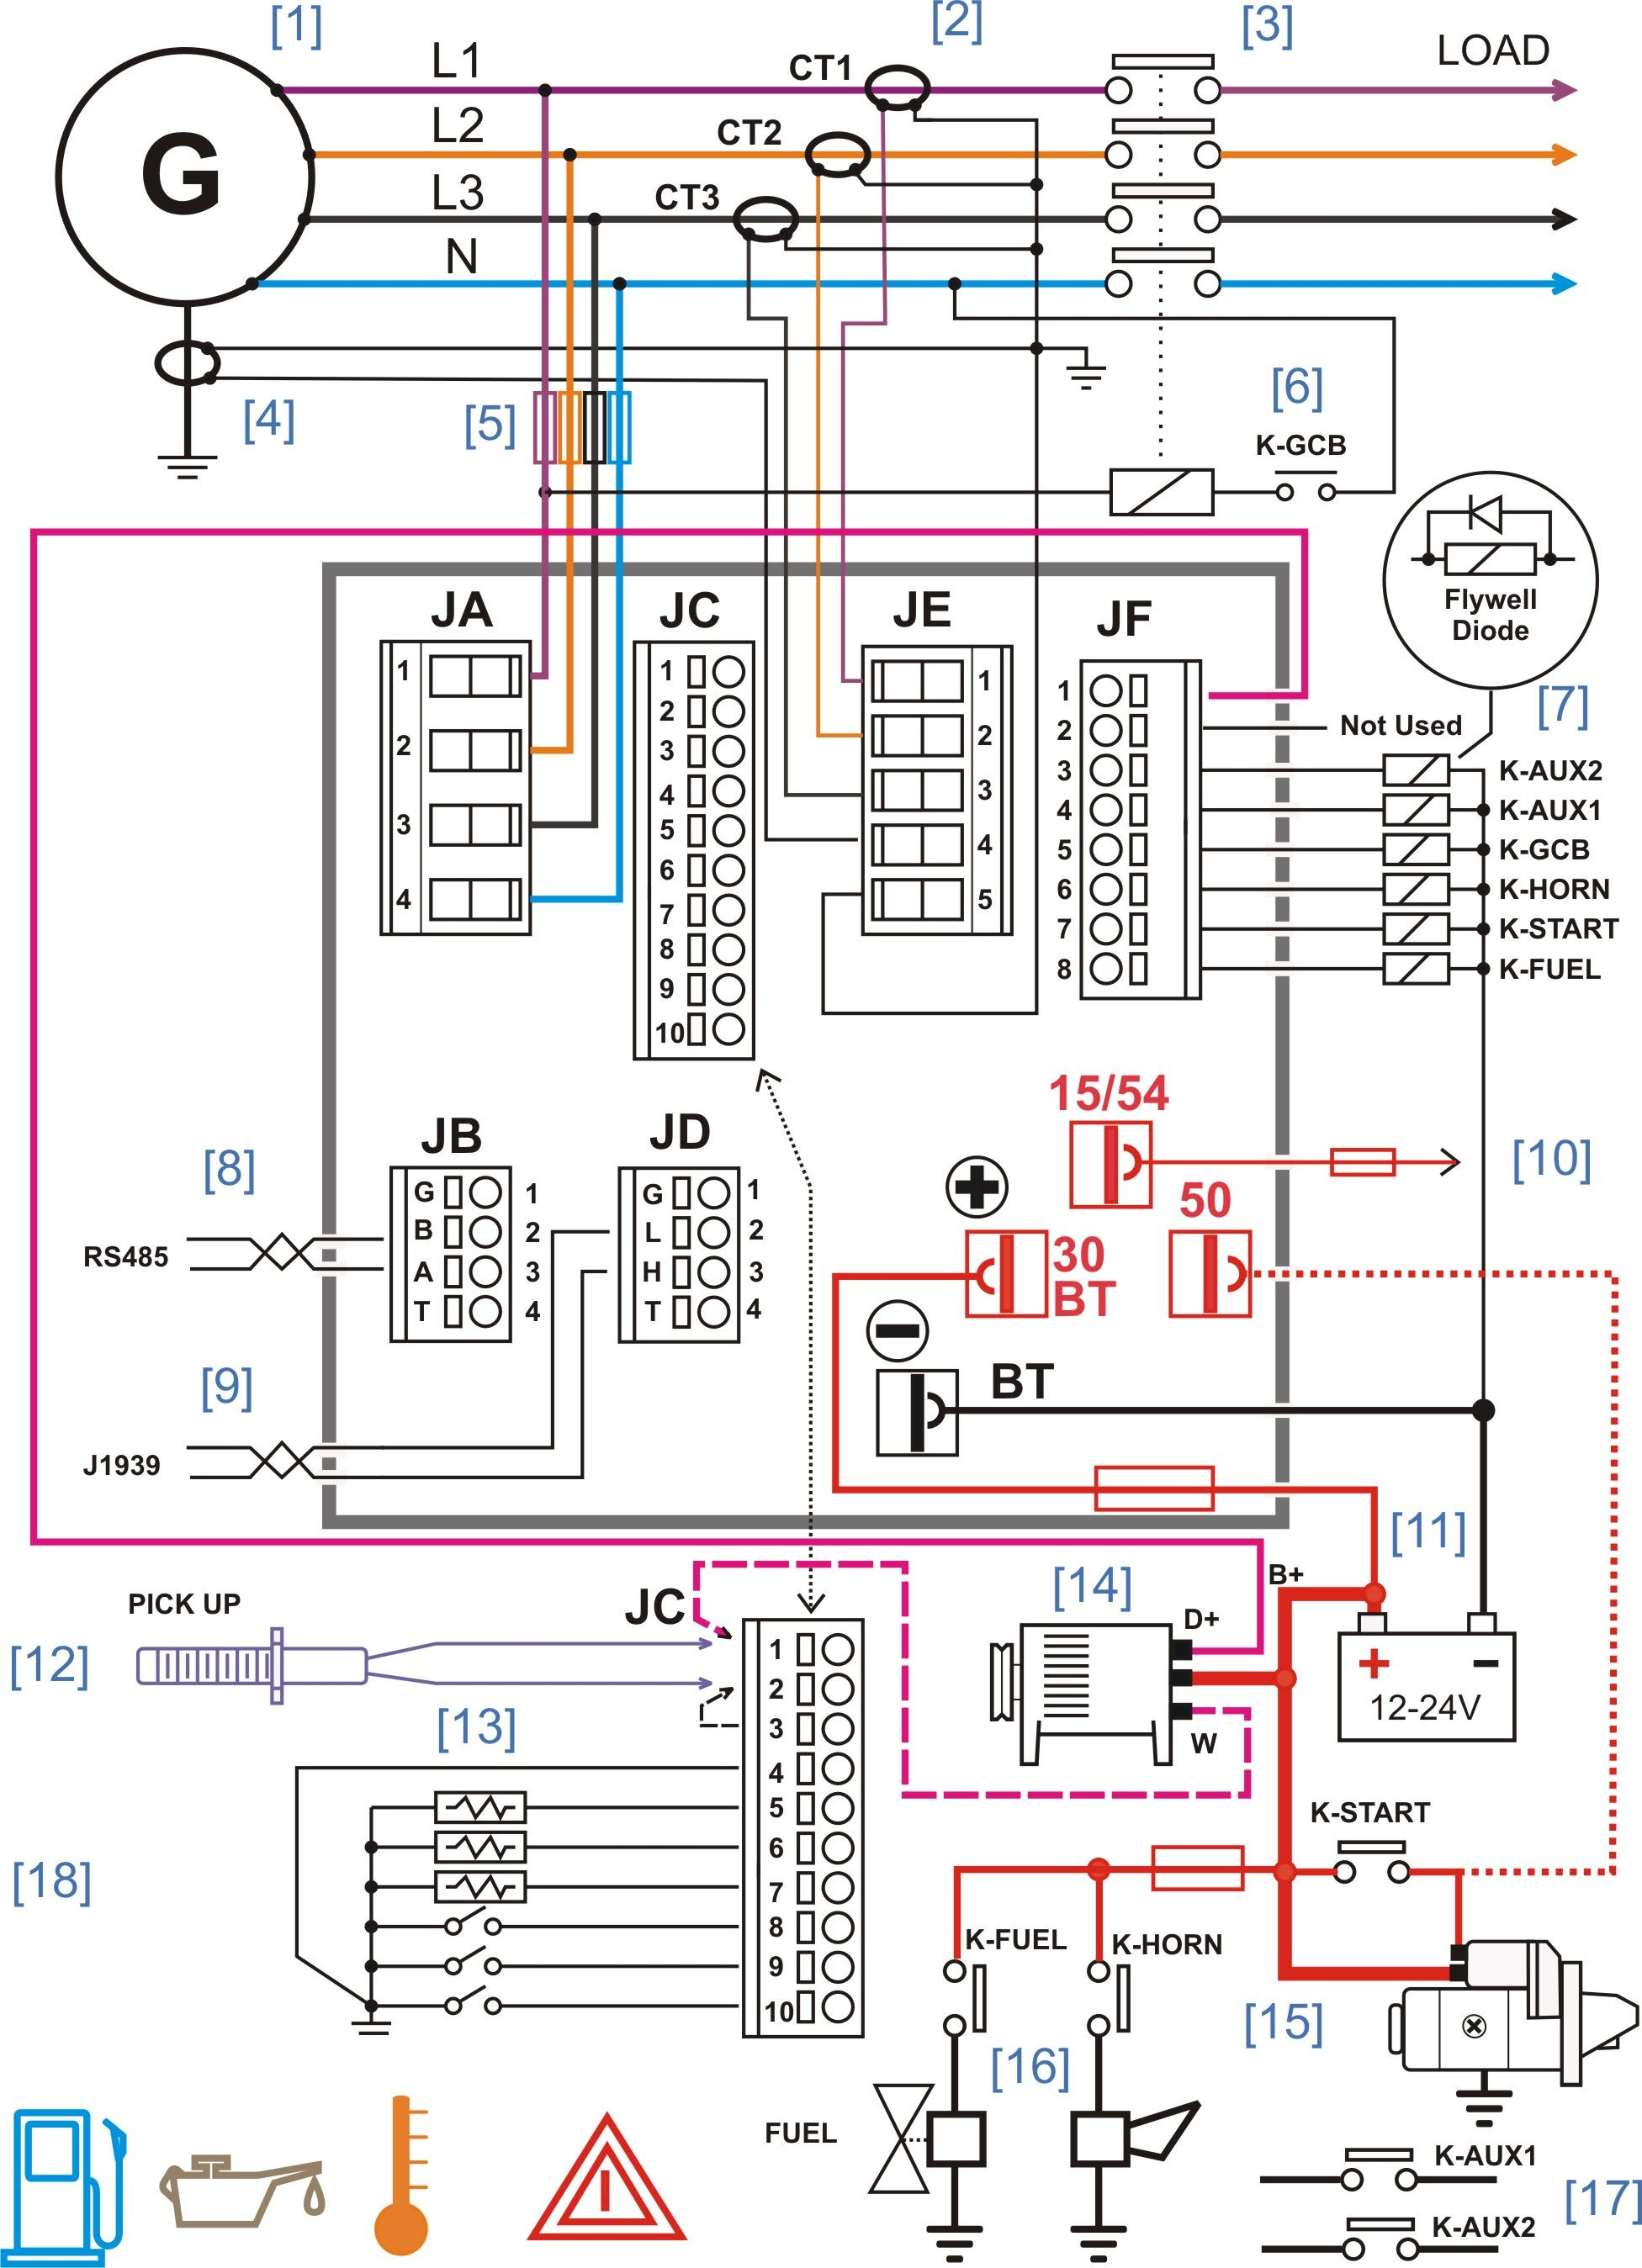 [SCHEMATICS_48DE]  Weekend Warrior 1800 Wiring Diagram - 1986 Blazer Fuse Box -  cusshman.yenpancane.jeanjaures37.fr | Weekend Warrior 1800 Wiring Diagram |  | Wiring Diagram Resource